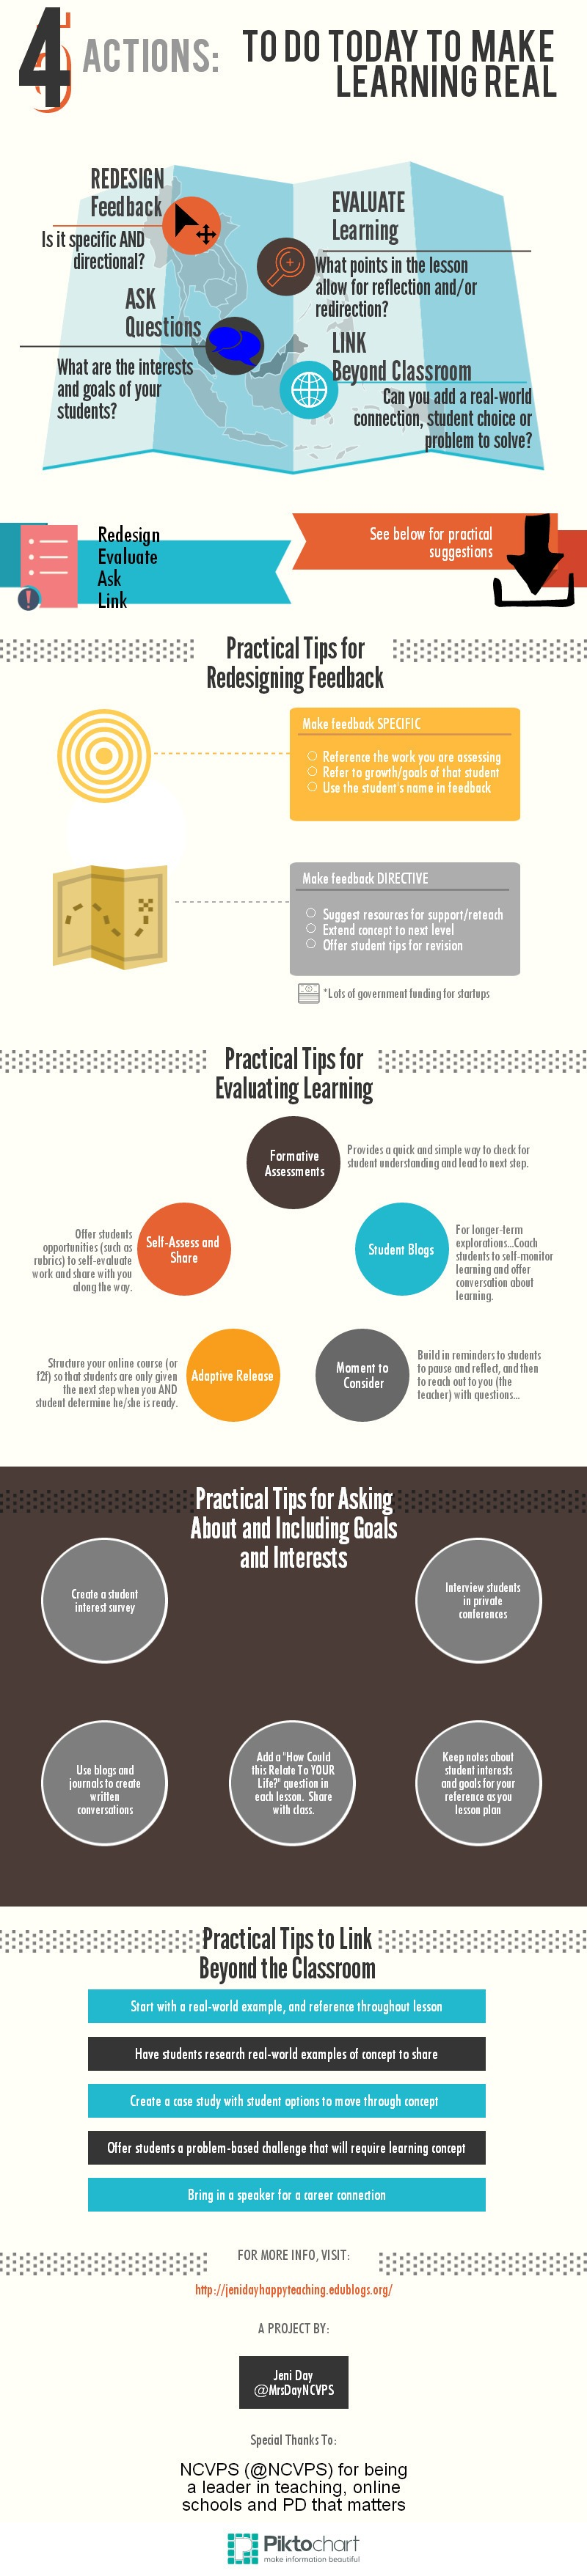 Steps to Real Learning Infographic